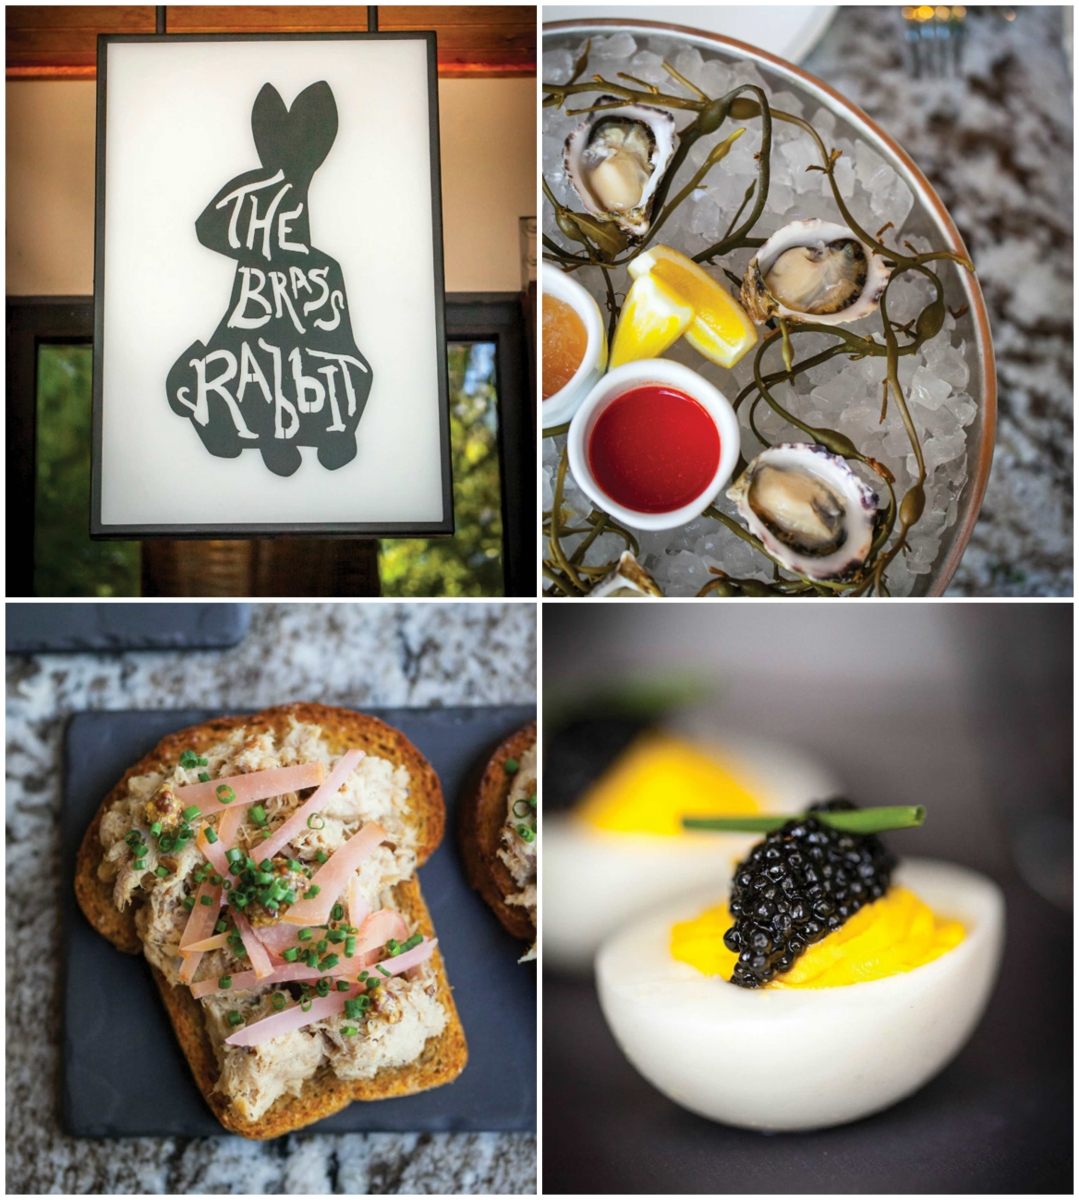 The Brass Rabbit offers an inspired range of small plates, from raw oysters served with mignonette granita to Eggs Mimosa with a dollop of caviar, and rye toast topped with rabbit rillettes. (Photos by Jeremy Sykes)